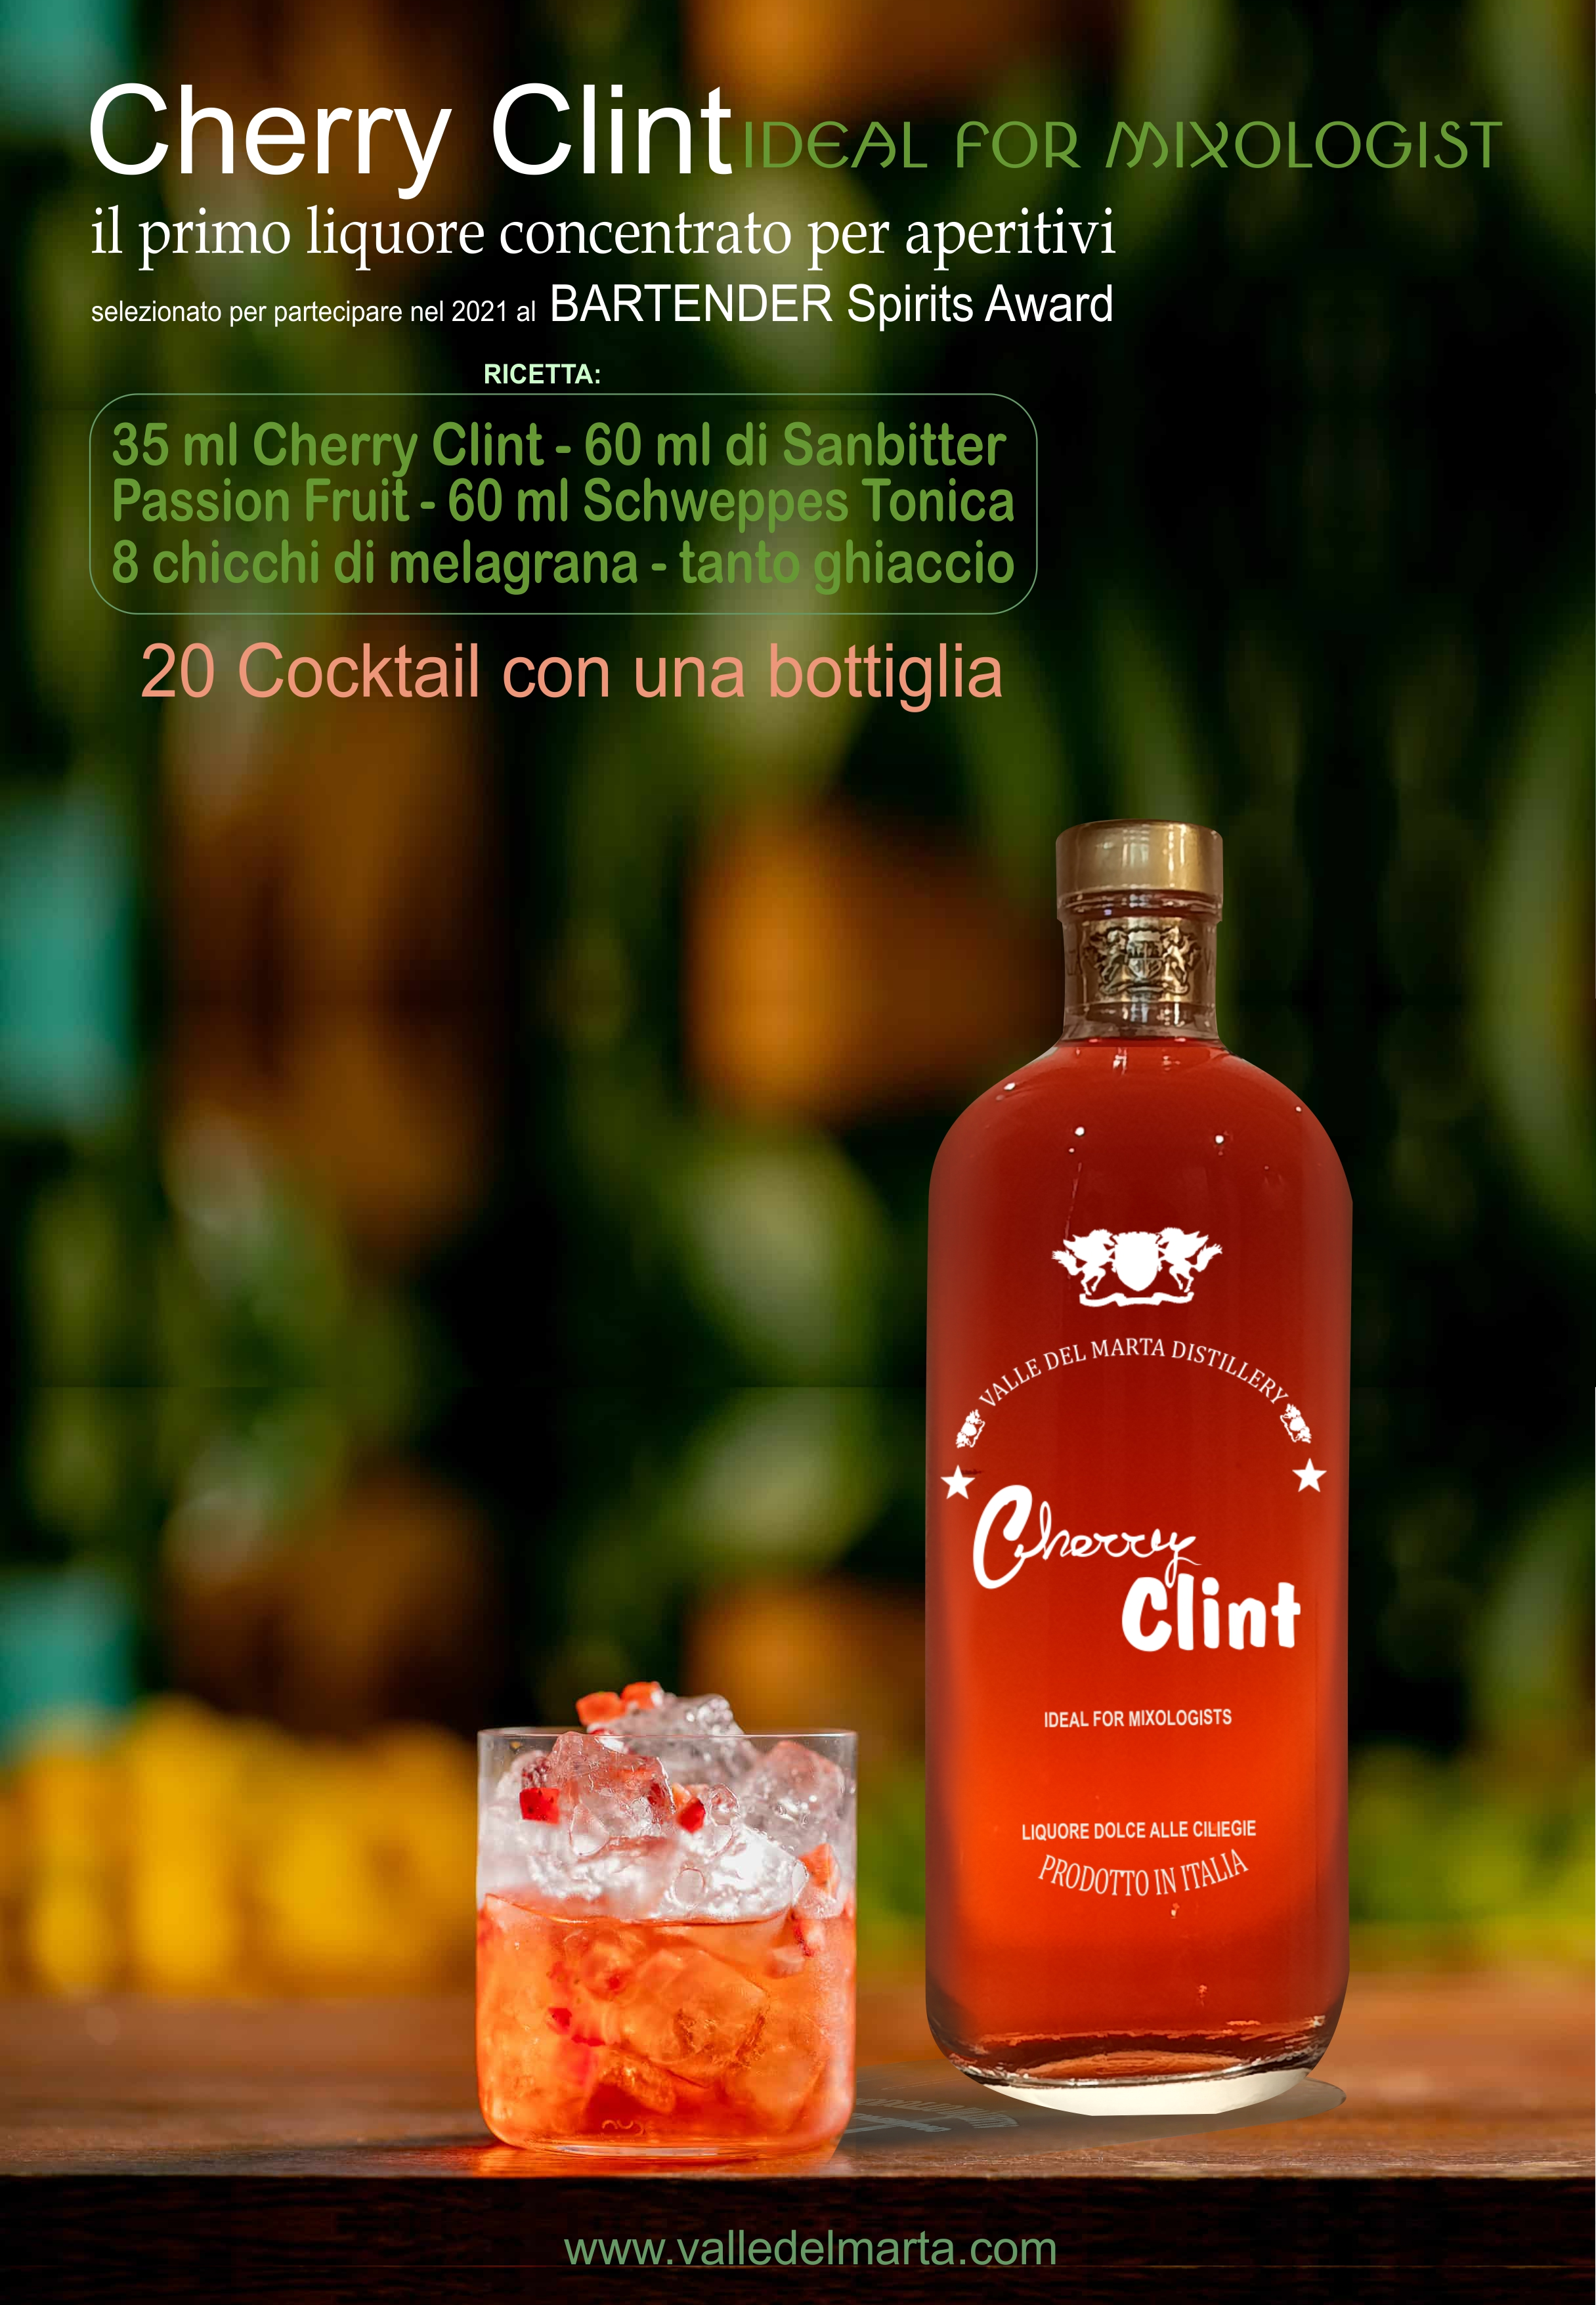 cherry clint passion fruit tonica schweppes tonica